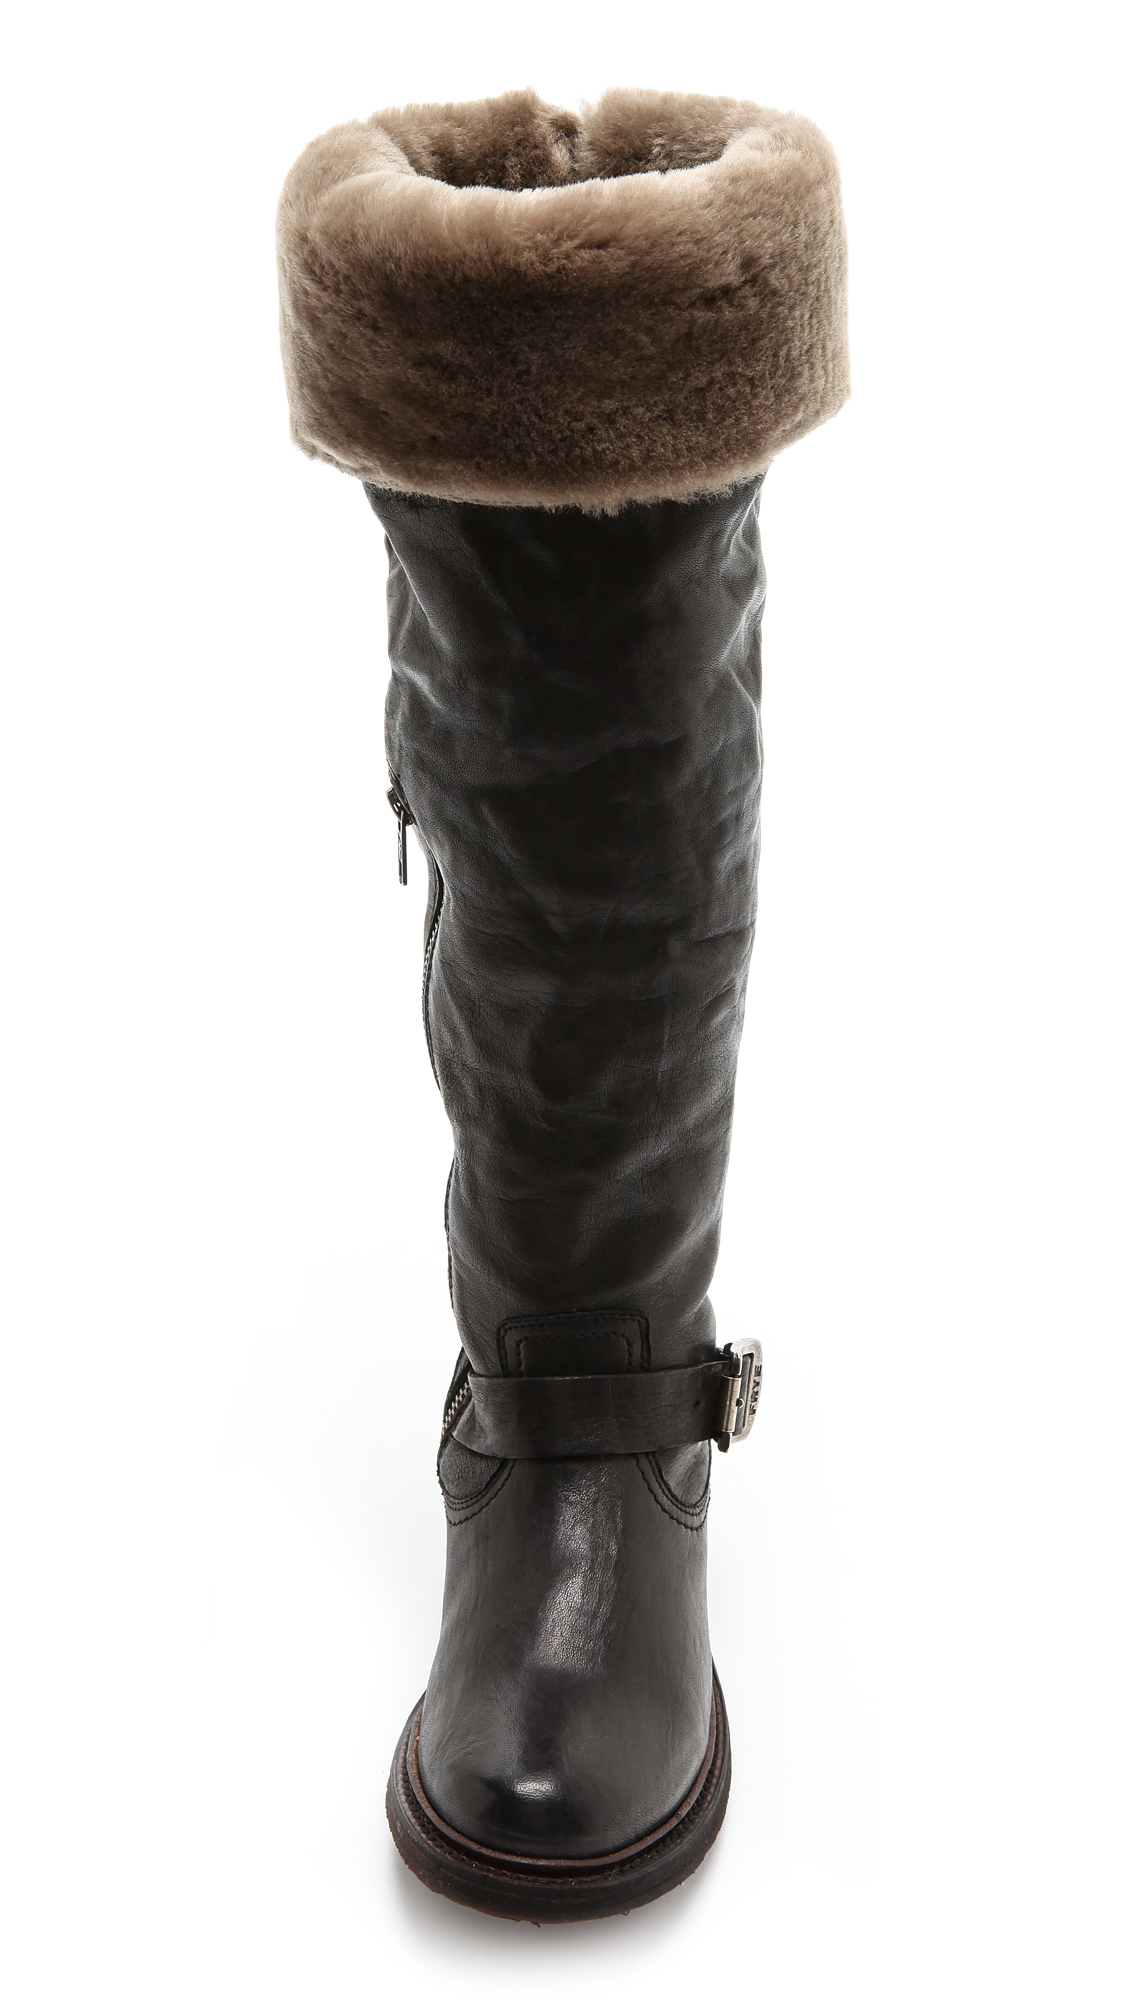 94cb460a61b Frye Valerie Shearling Over the Knee Boots